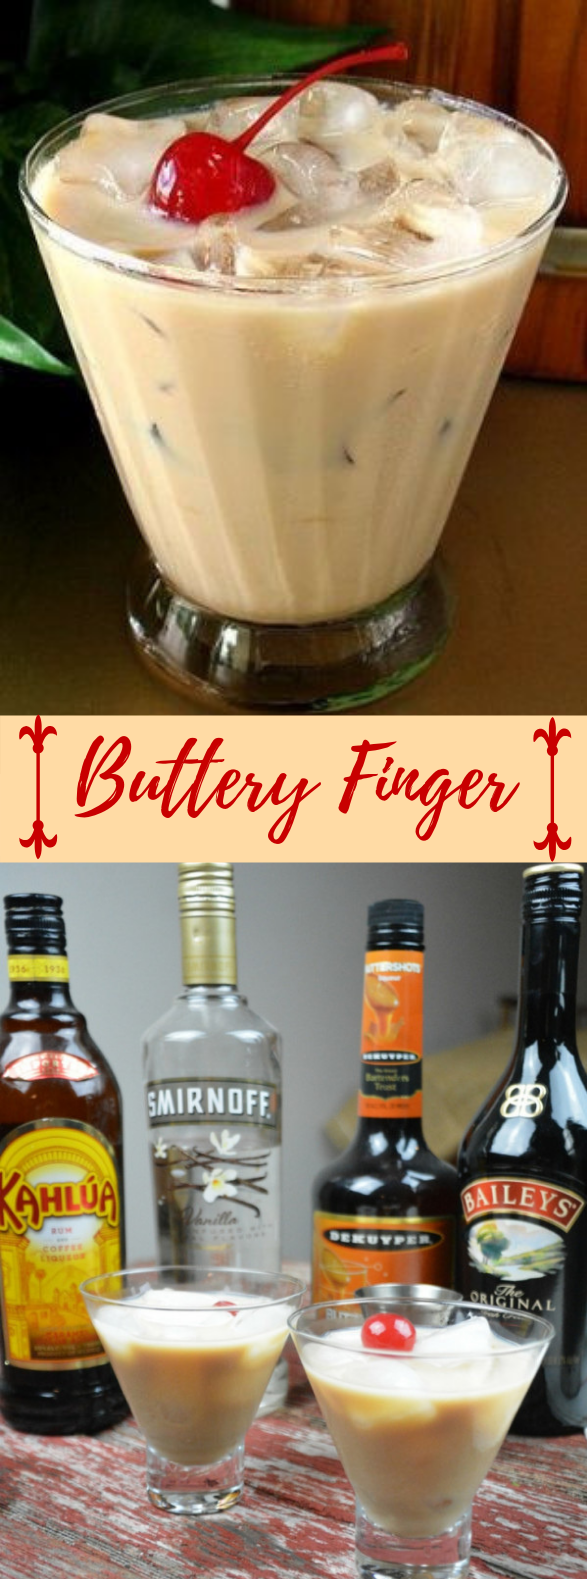 BUTTERY FINGER #vodka #deliciousrecipes